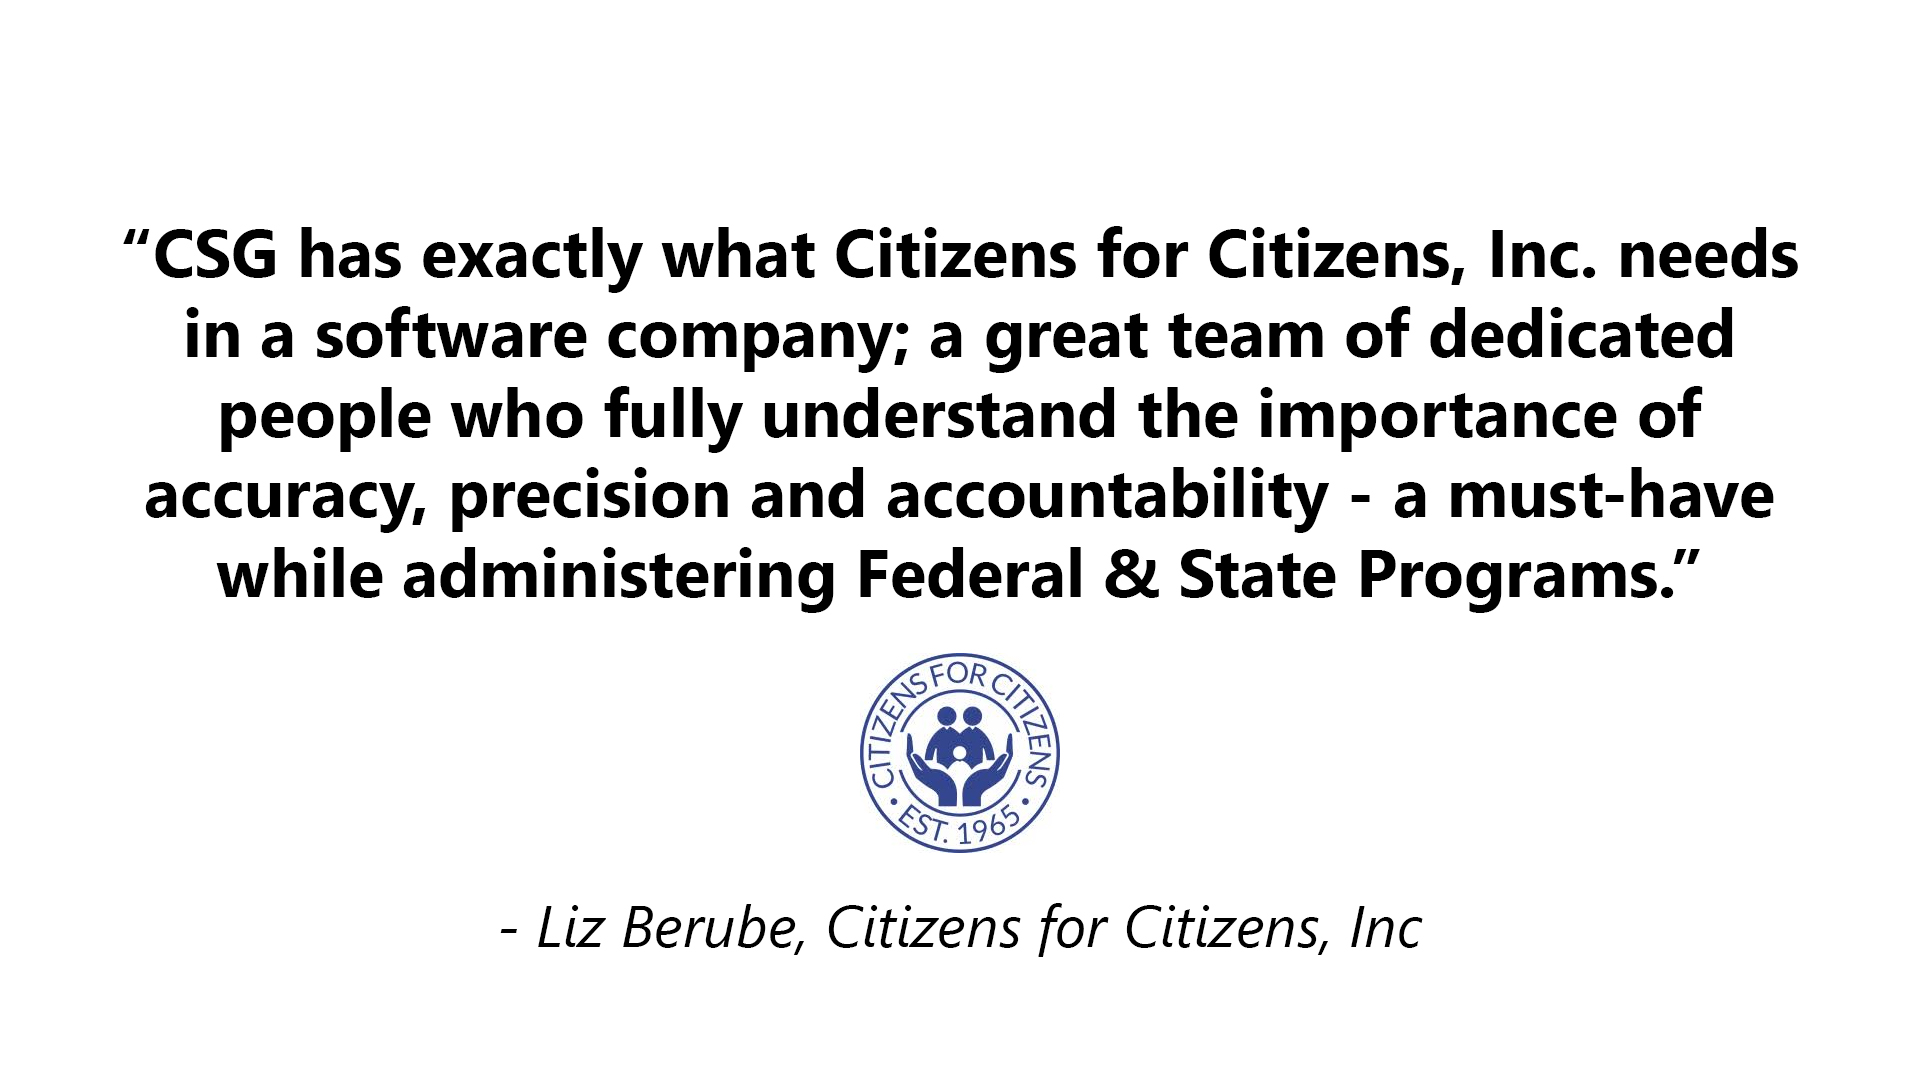 CSG has exactly what Citizens for Citizens, Inc. needs in a software company; a great team of dedicated people who fully understand the importance of accuracy, precision, and accountability - a must-have while administering Federal & State Programs.